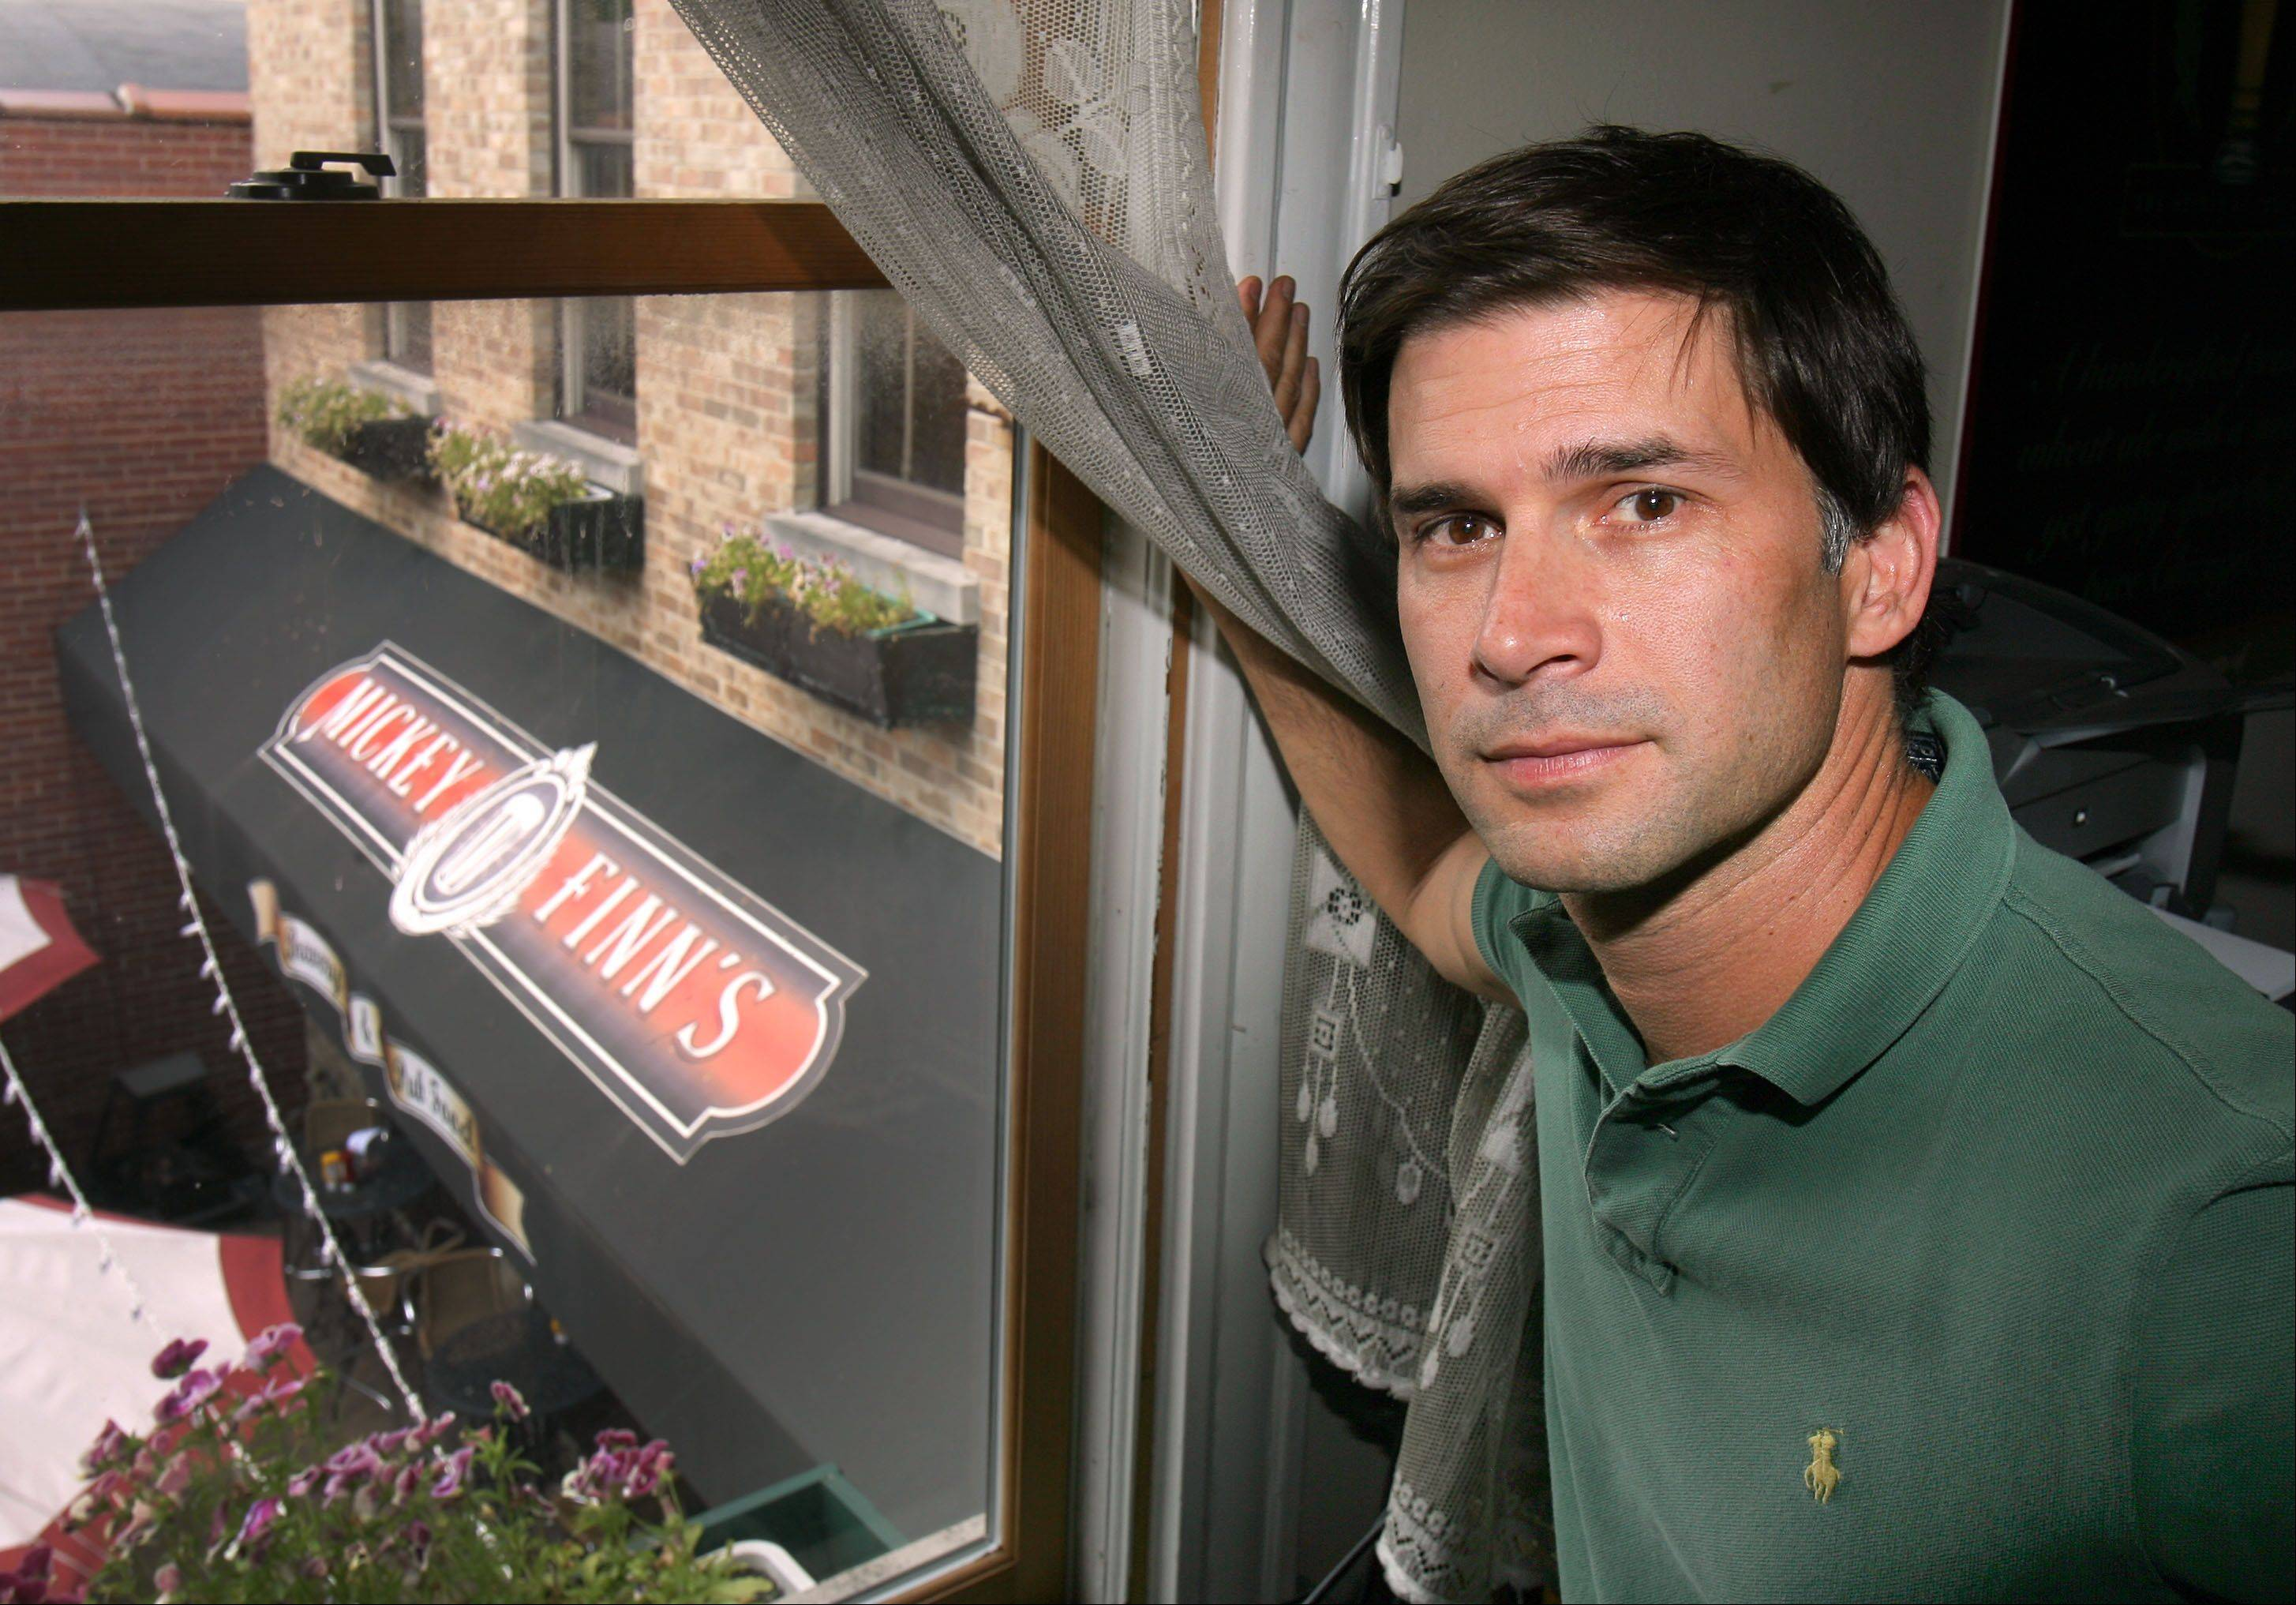 Brian Grano, proprietor of Mickey Finn's brewery in Libertyville, stands in his office, which overlooks the beer garden. The brew pub plans to move from its historic location at 412 N. Milwaukee Ave. to a new, larger building about a block away in time for Thanksgiving Eve 2013.